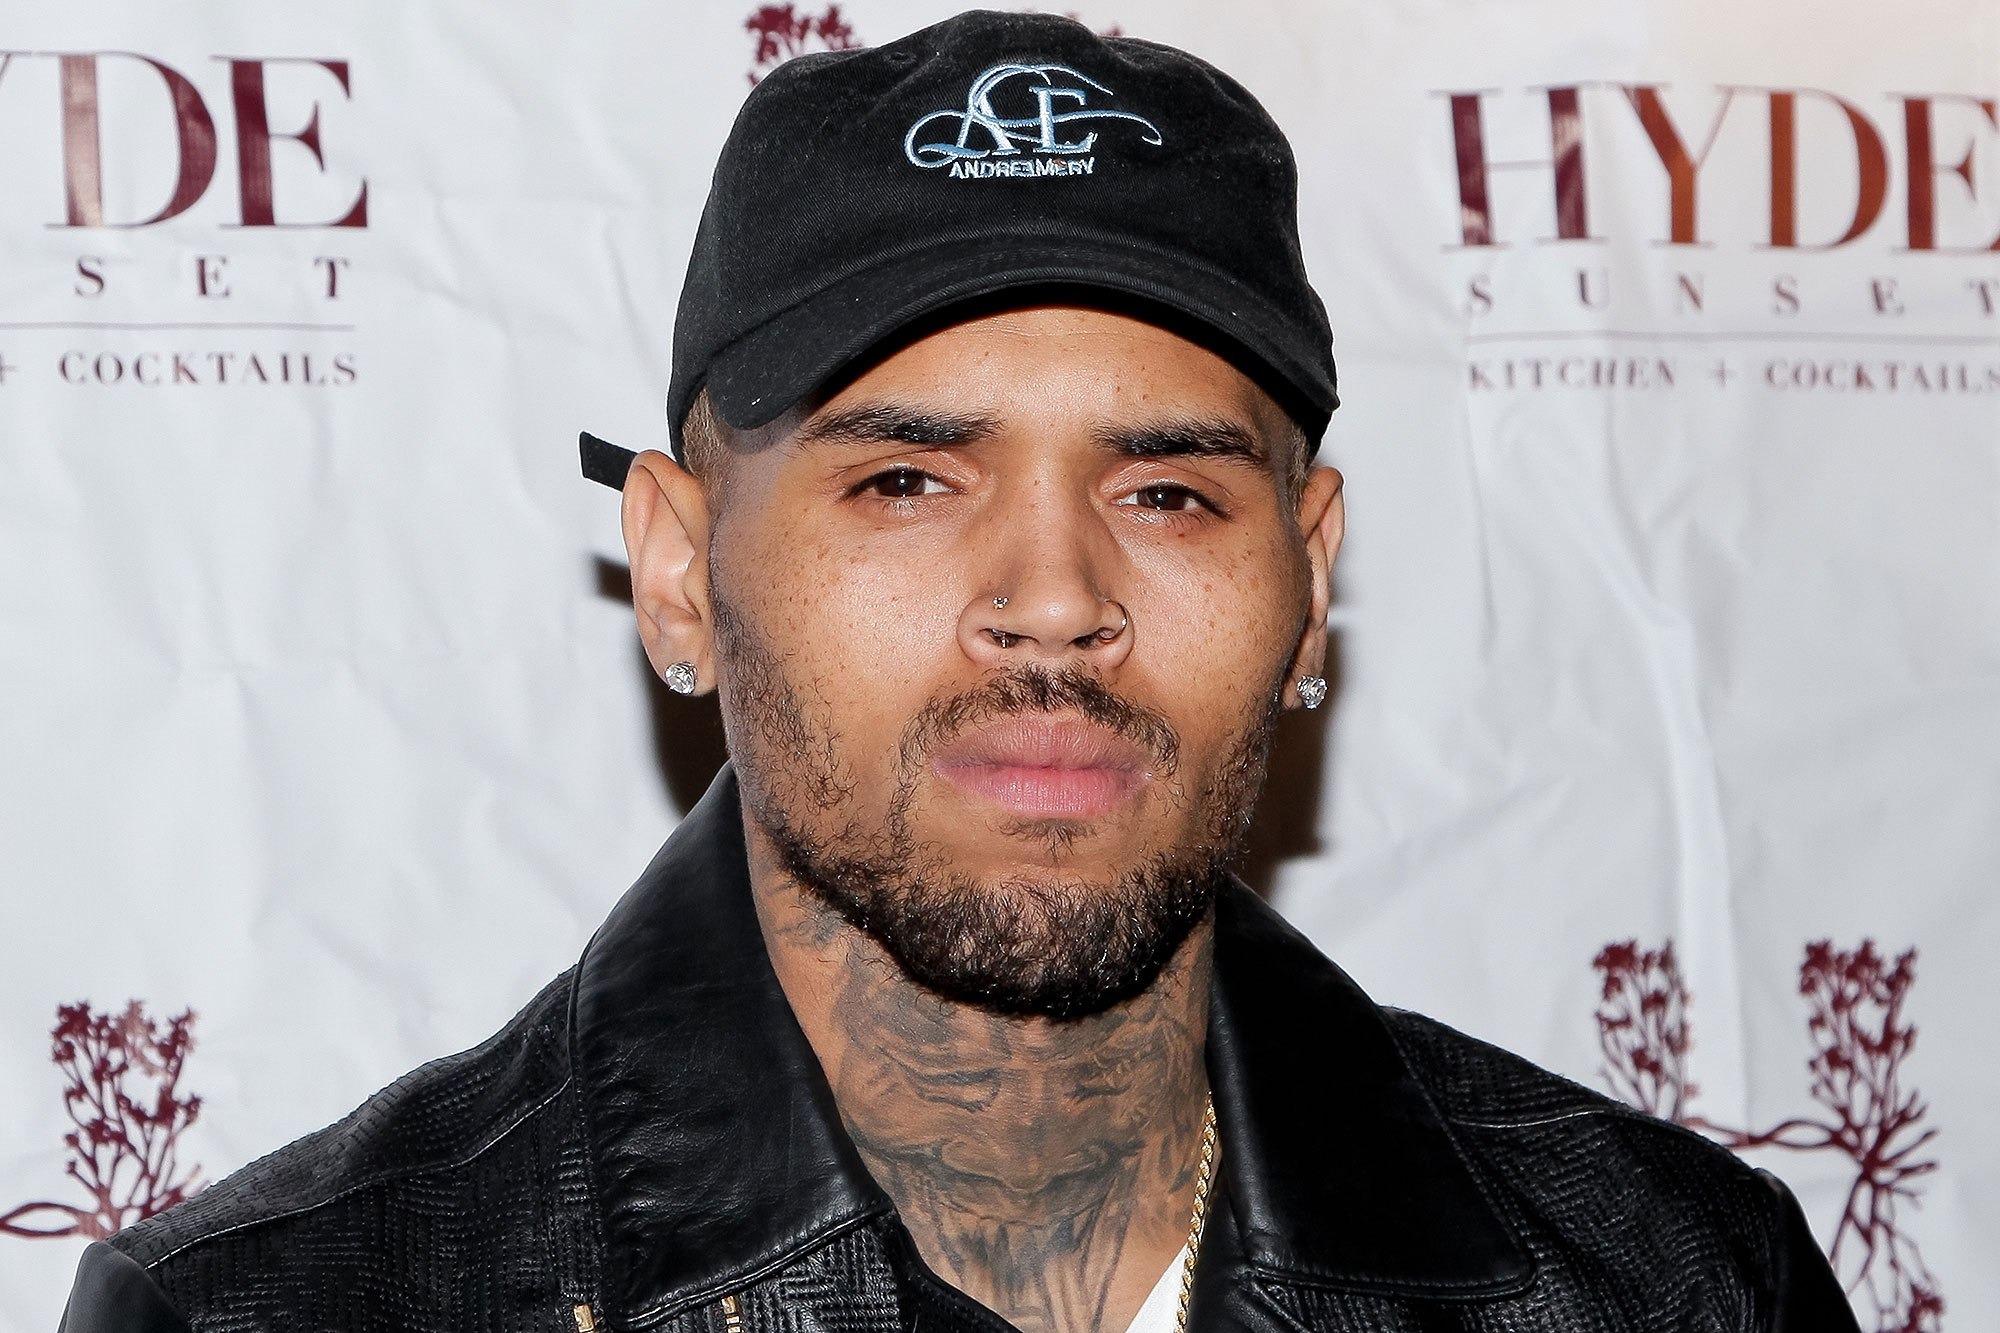 Chris Brown Ditangkap di Paris!